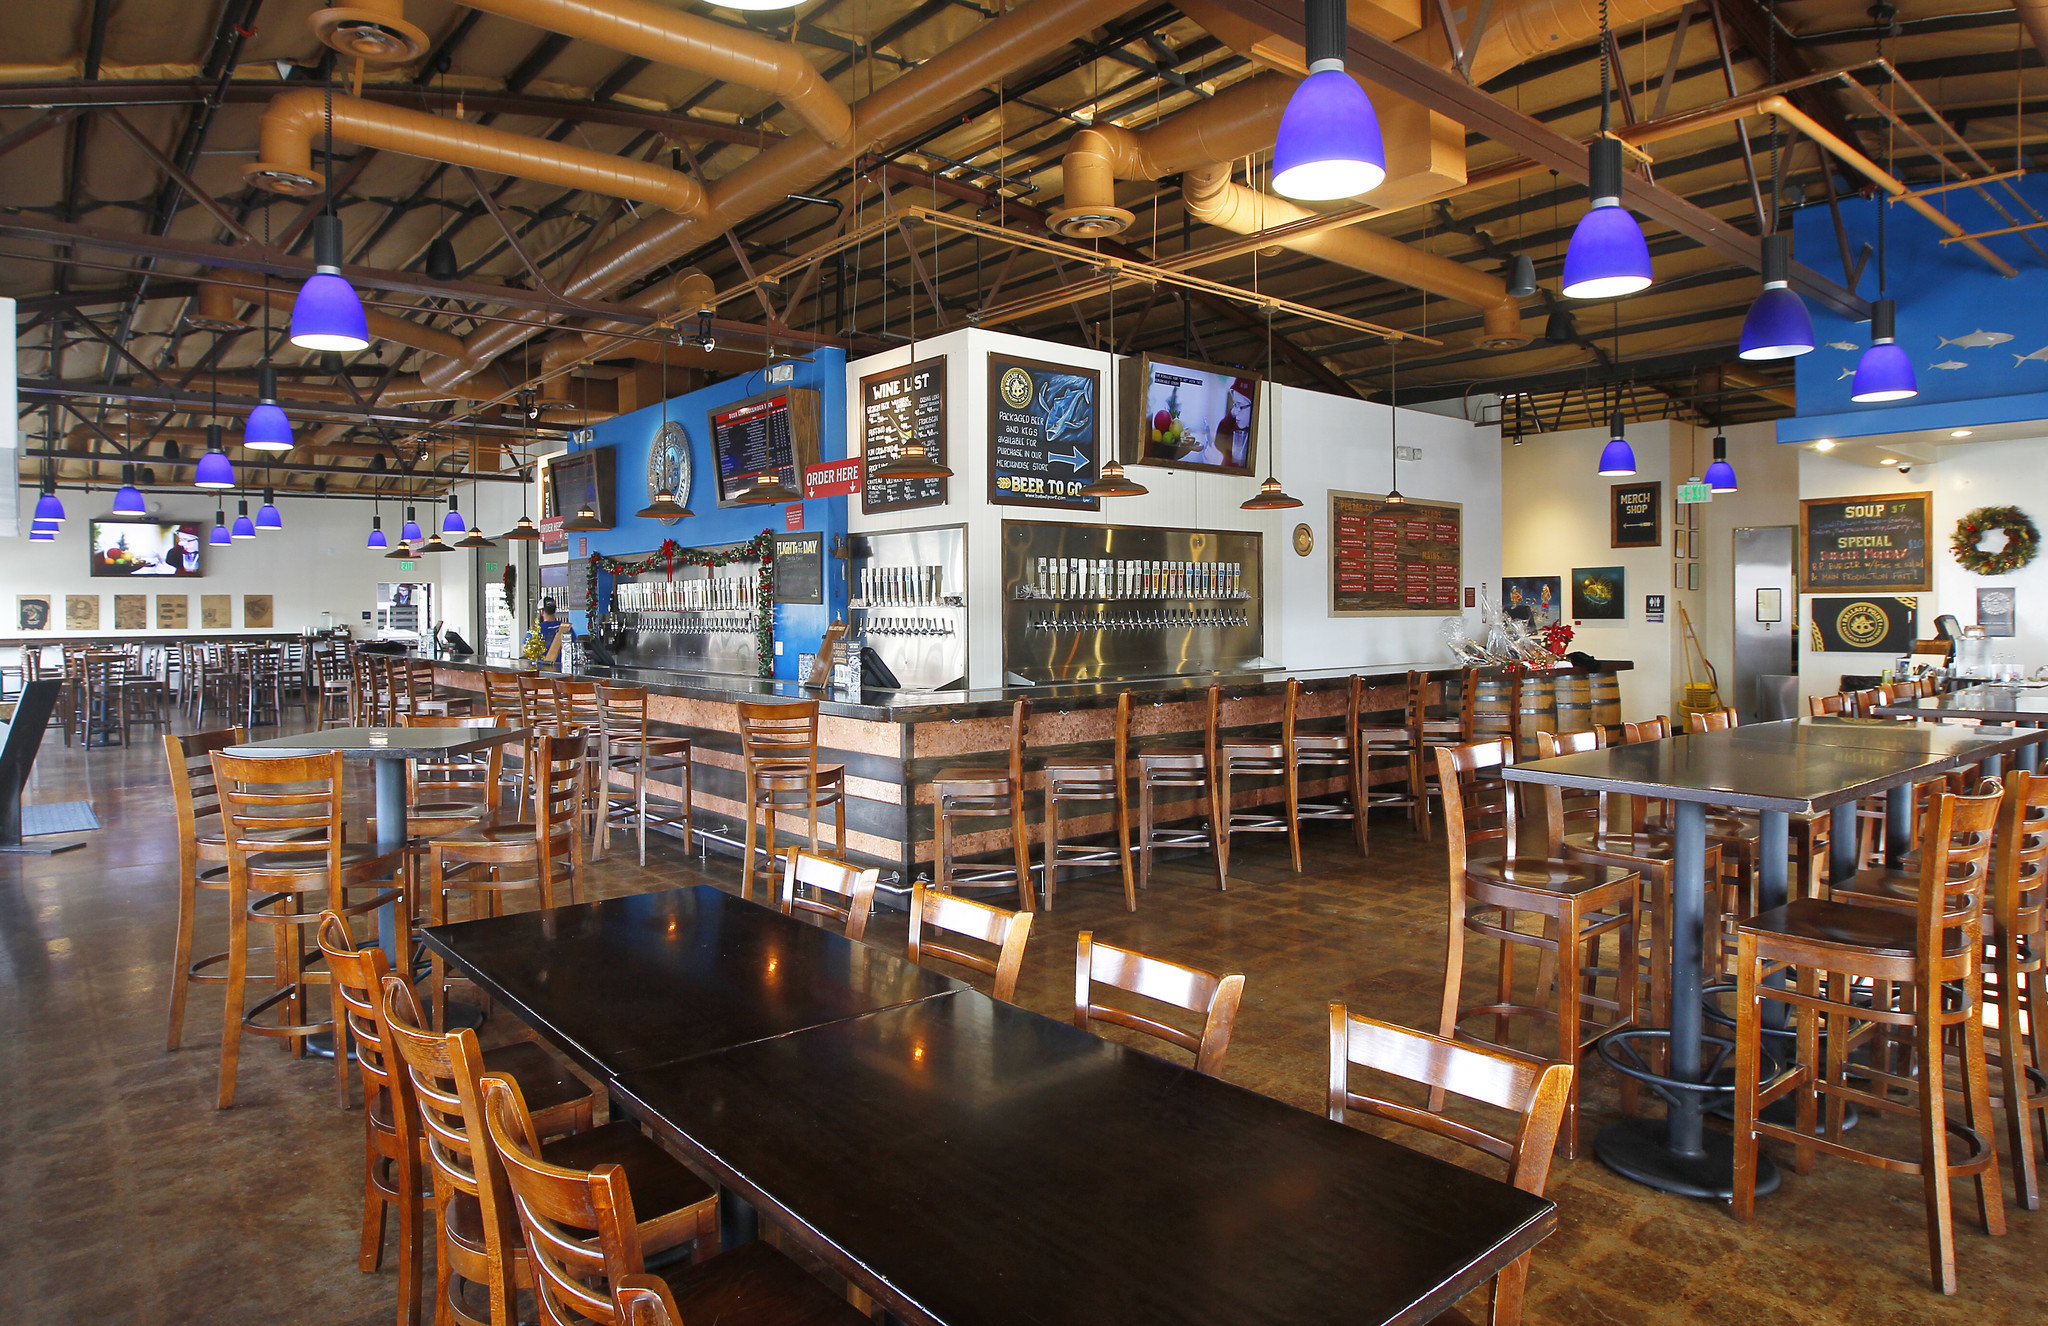 New Incentive Aims To Spur Biotech Brewery Expansions